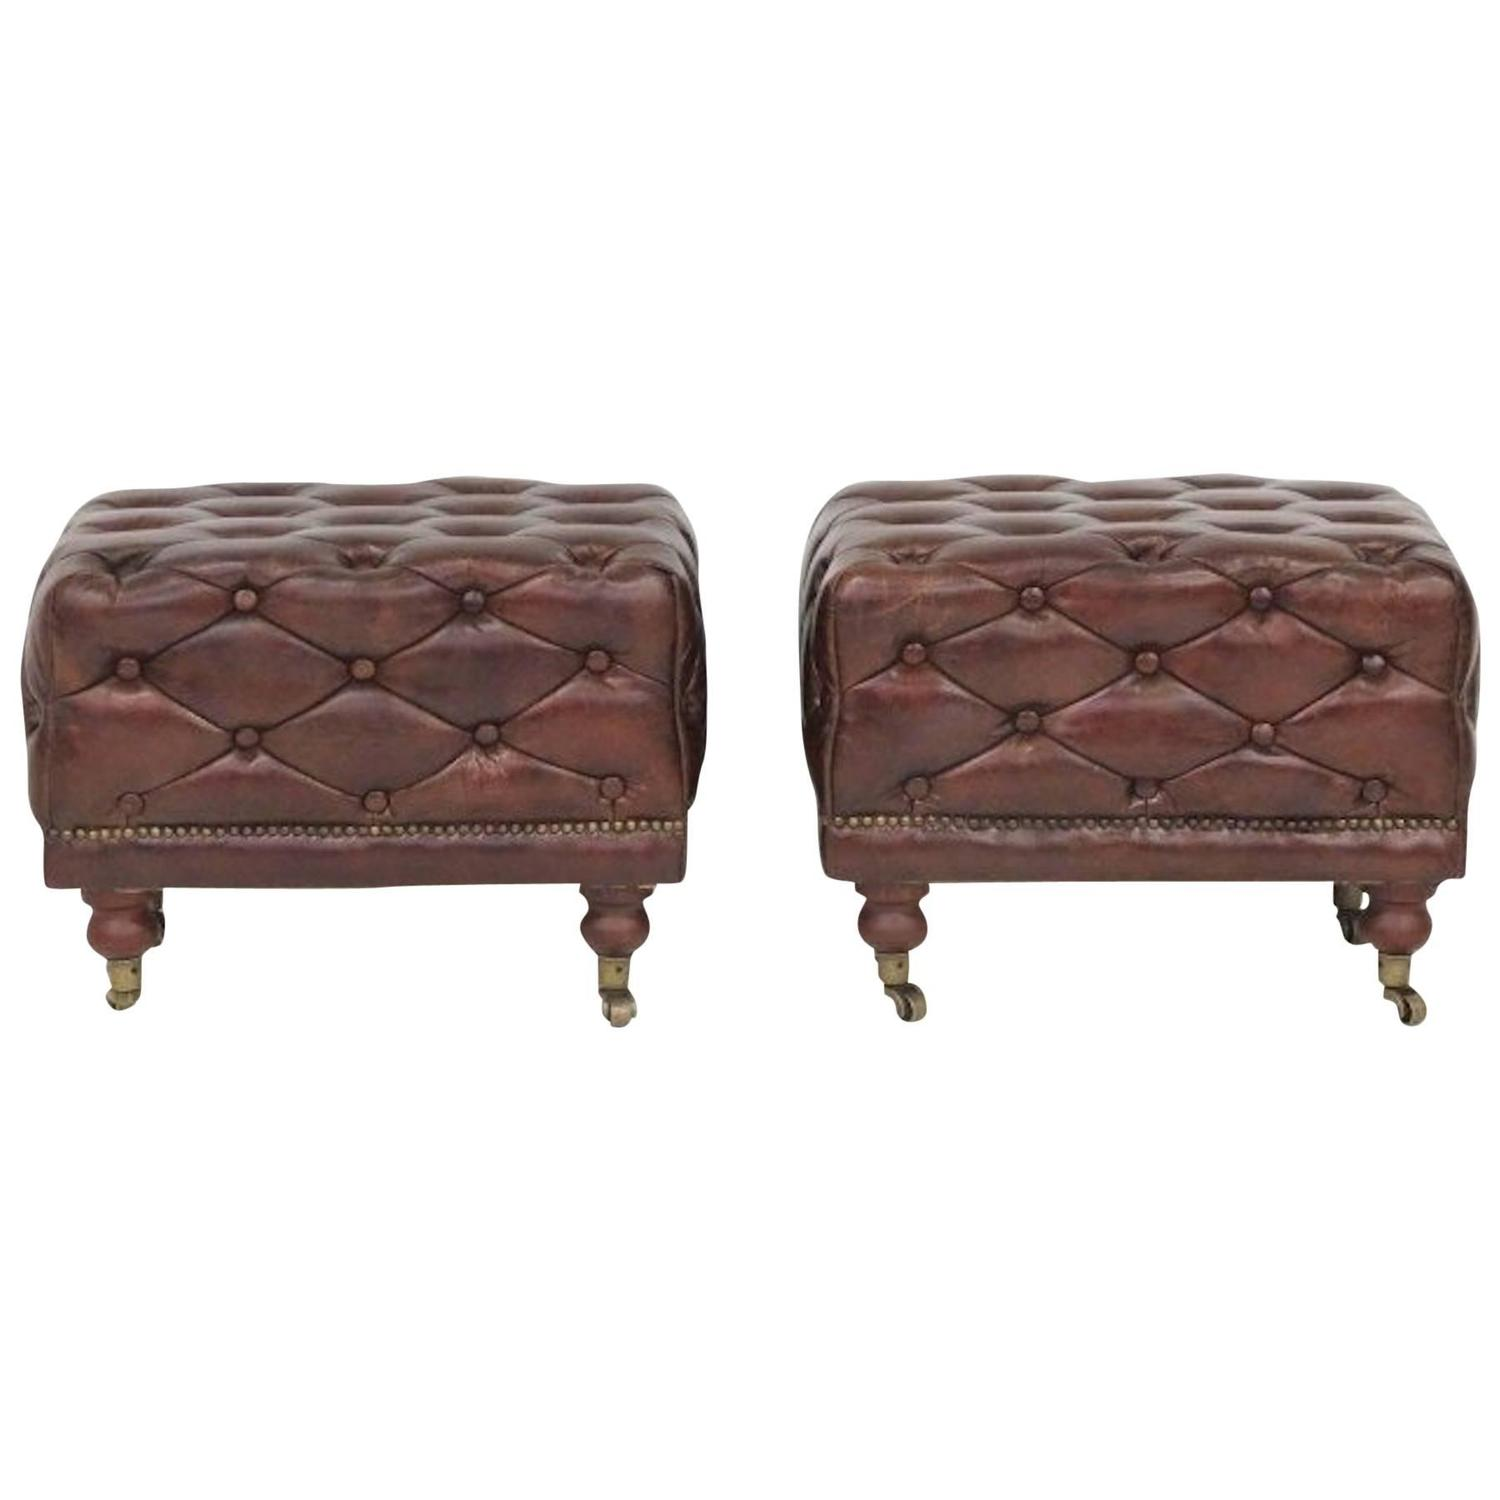 Pair of Leather Chesterfield Ottomans at 1stdibs